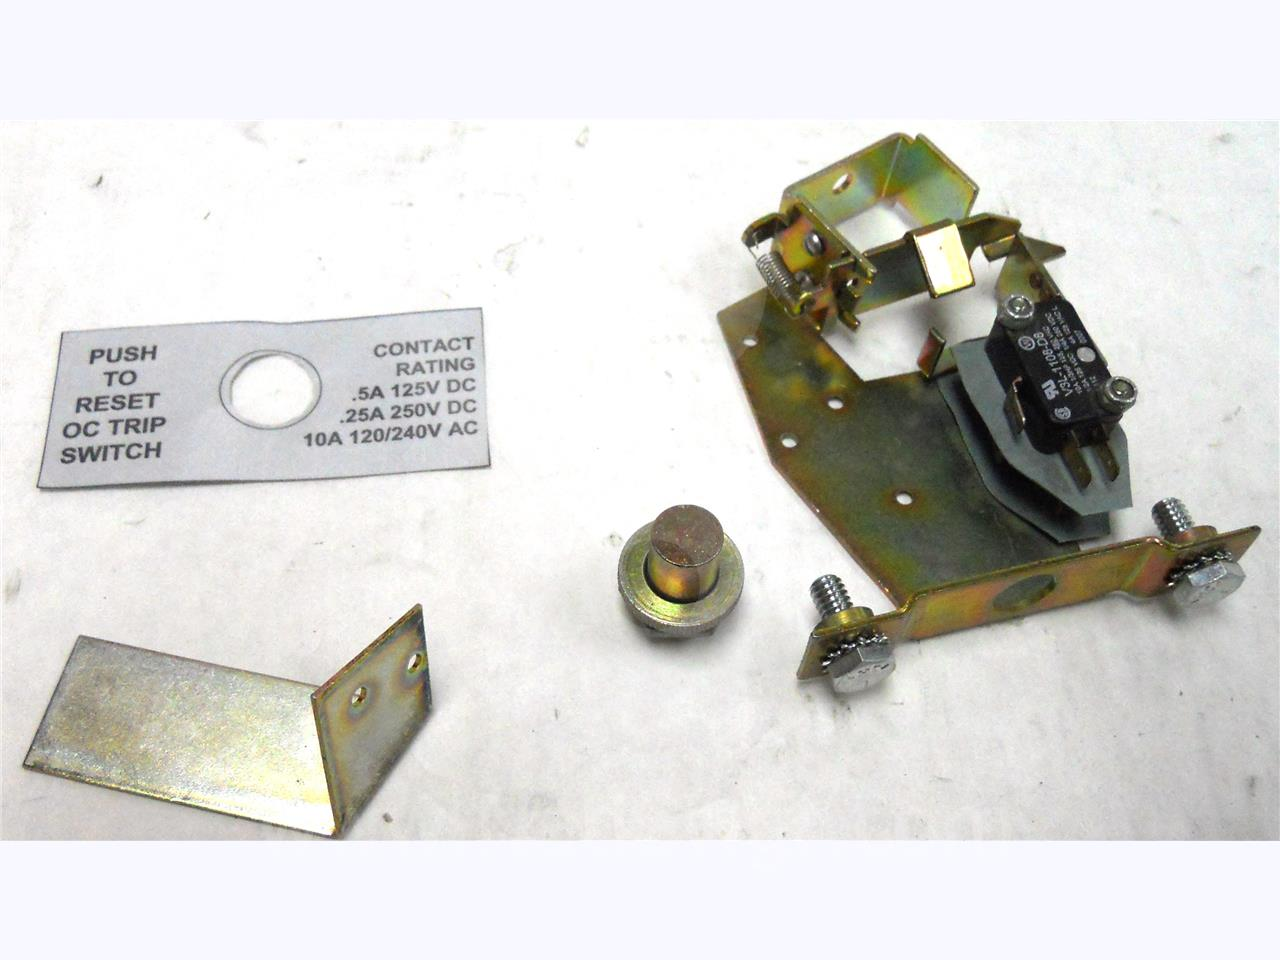 WH OTS DUAL BELL ALARM ASSEMBLY, MANUAL RESET